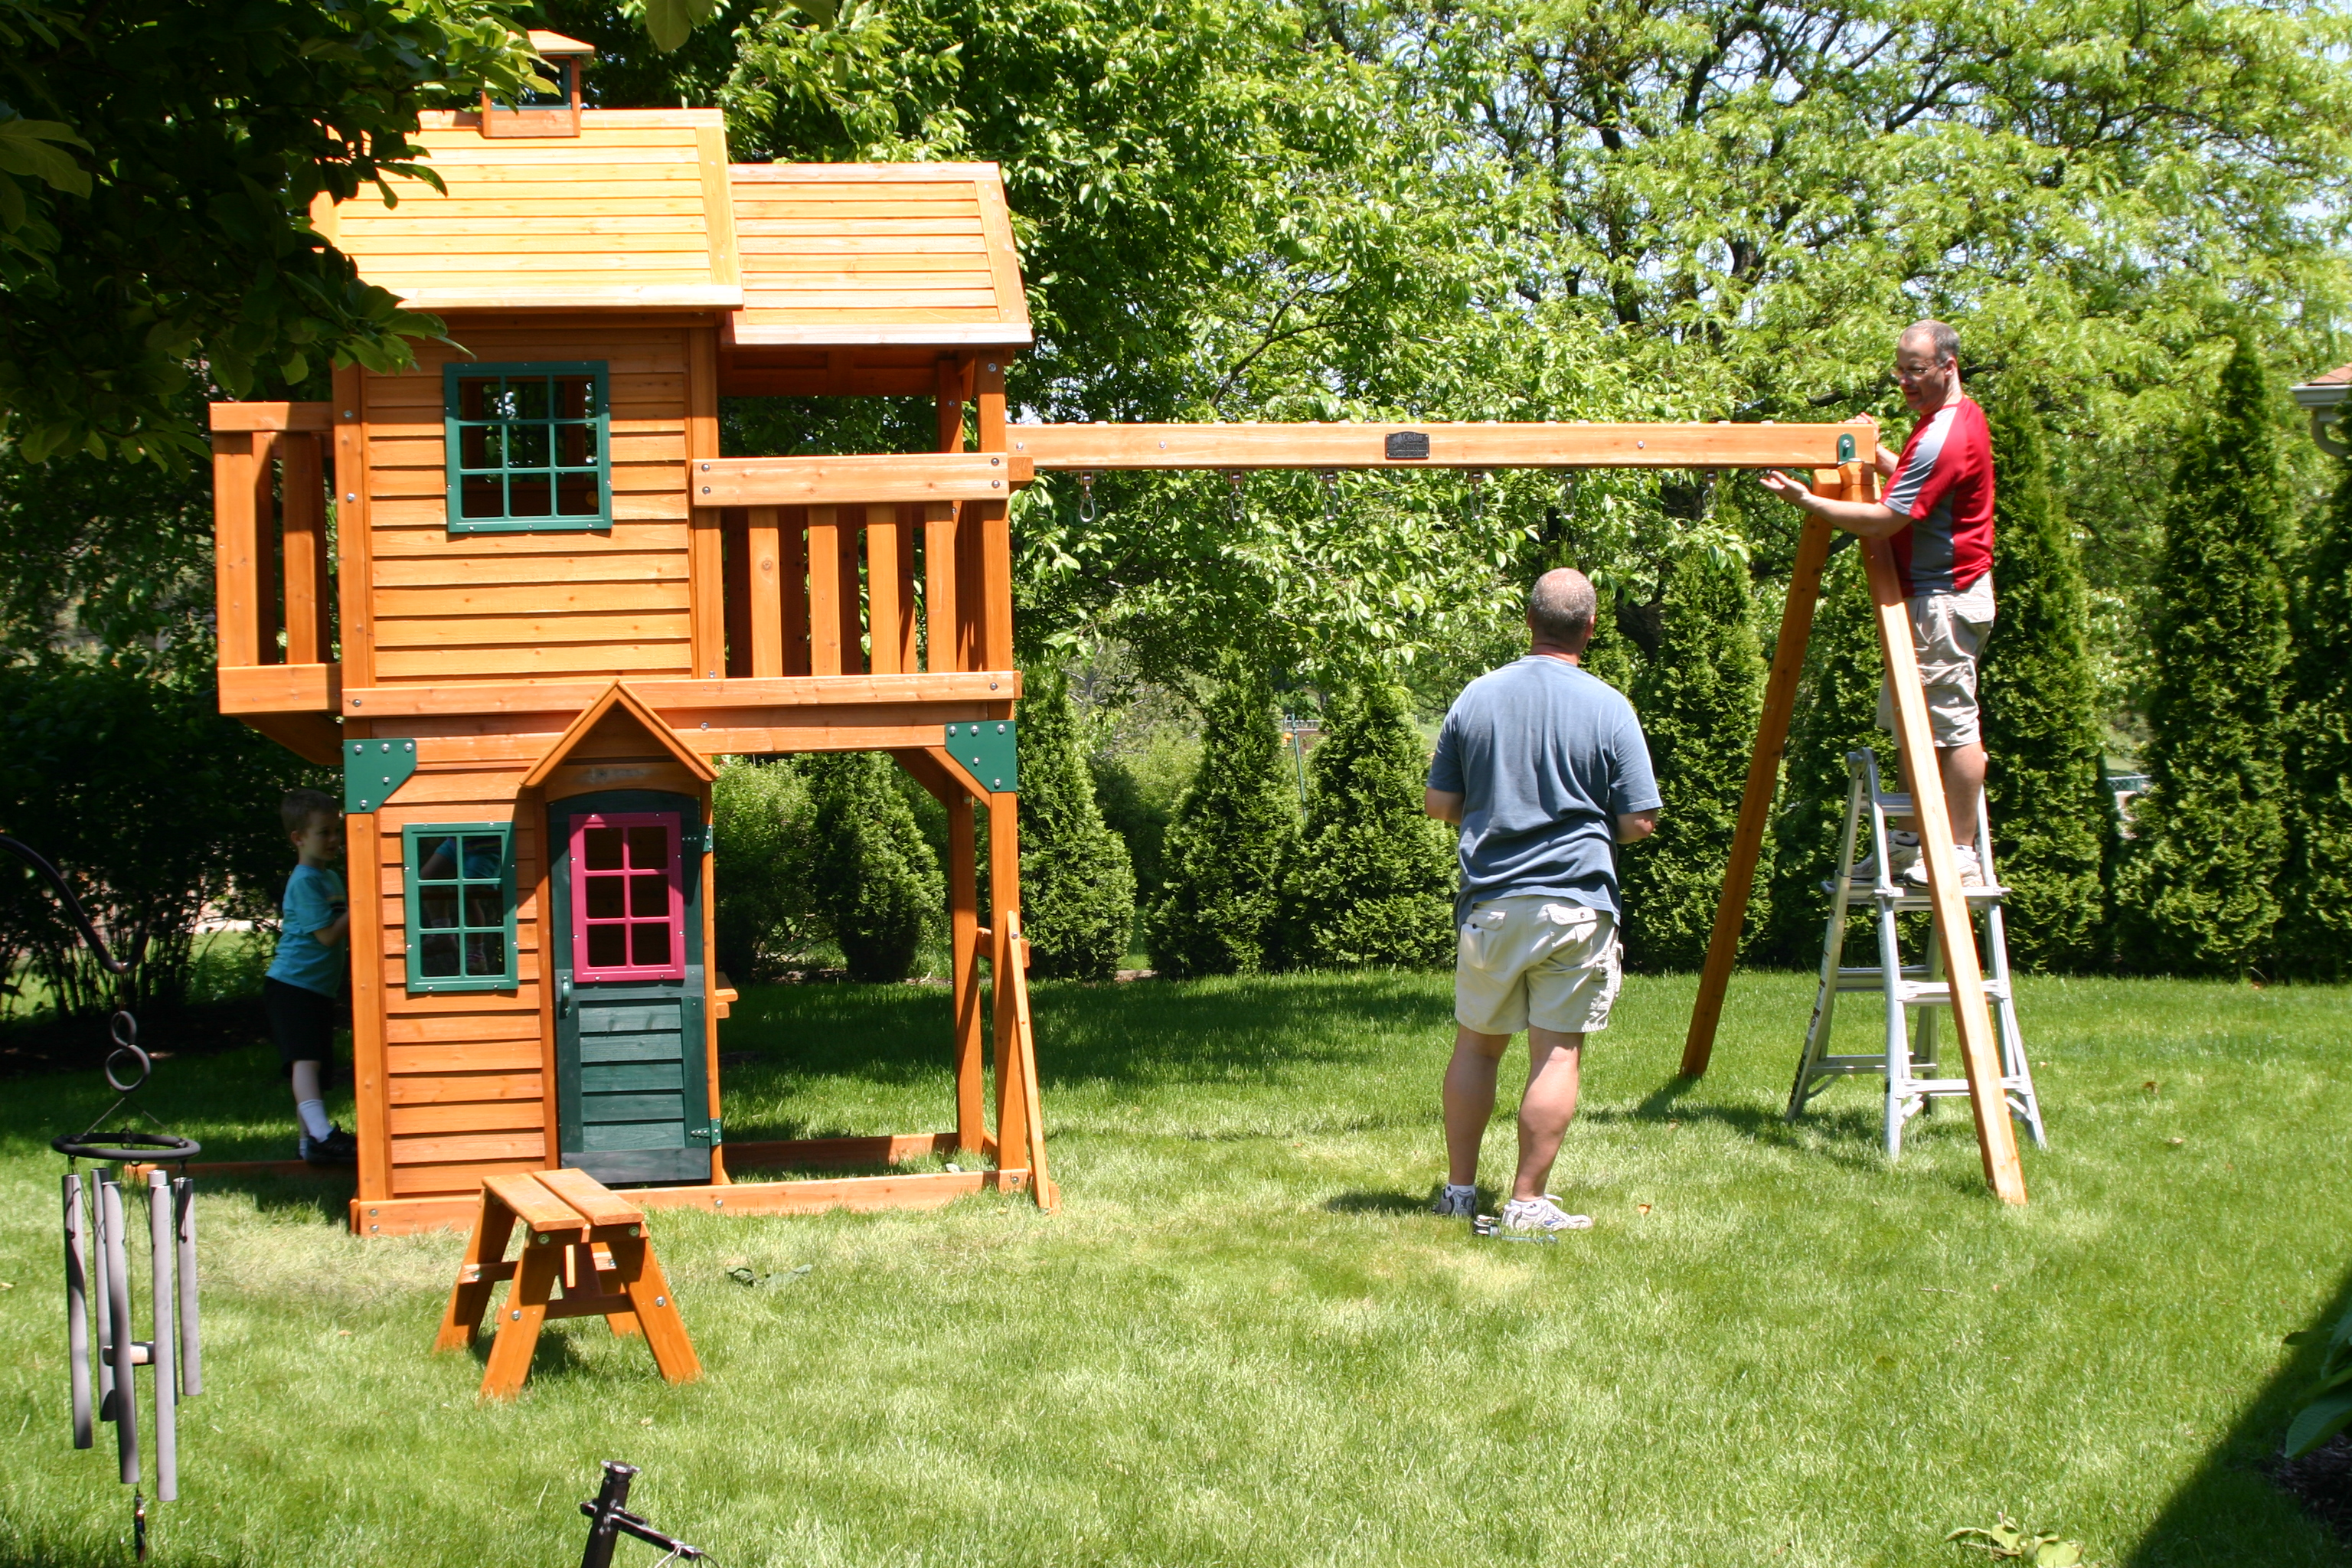 Shoo Fly Shoo Eat Play Love Kids Outdoor Wooden Playhouse Ideas